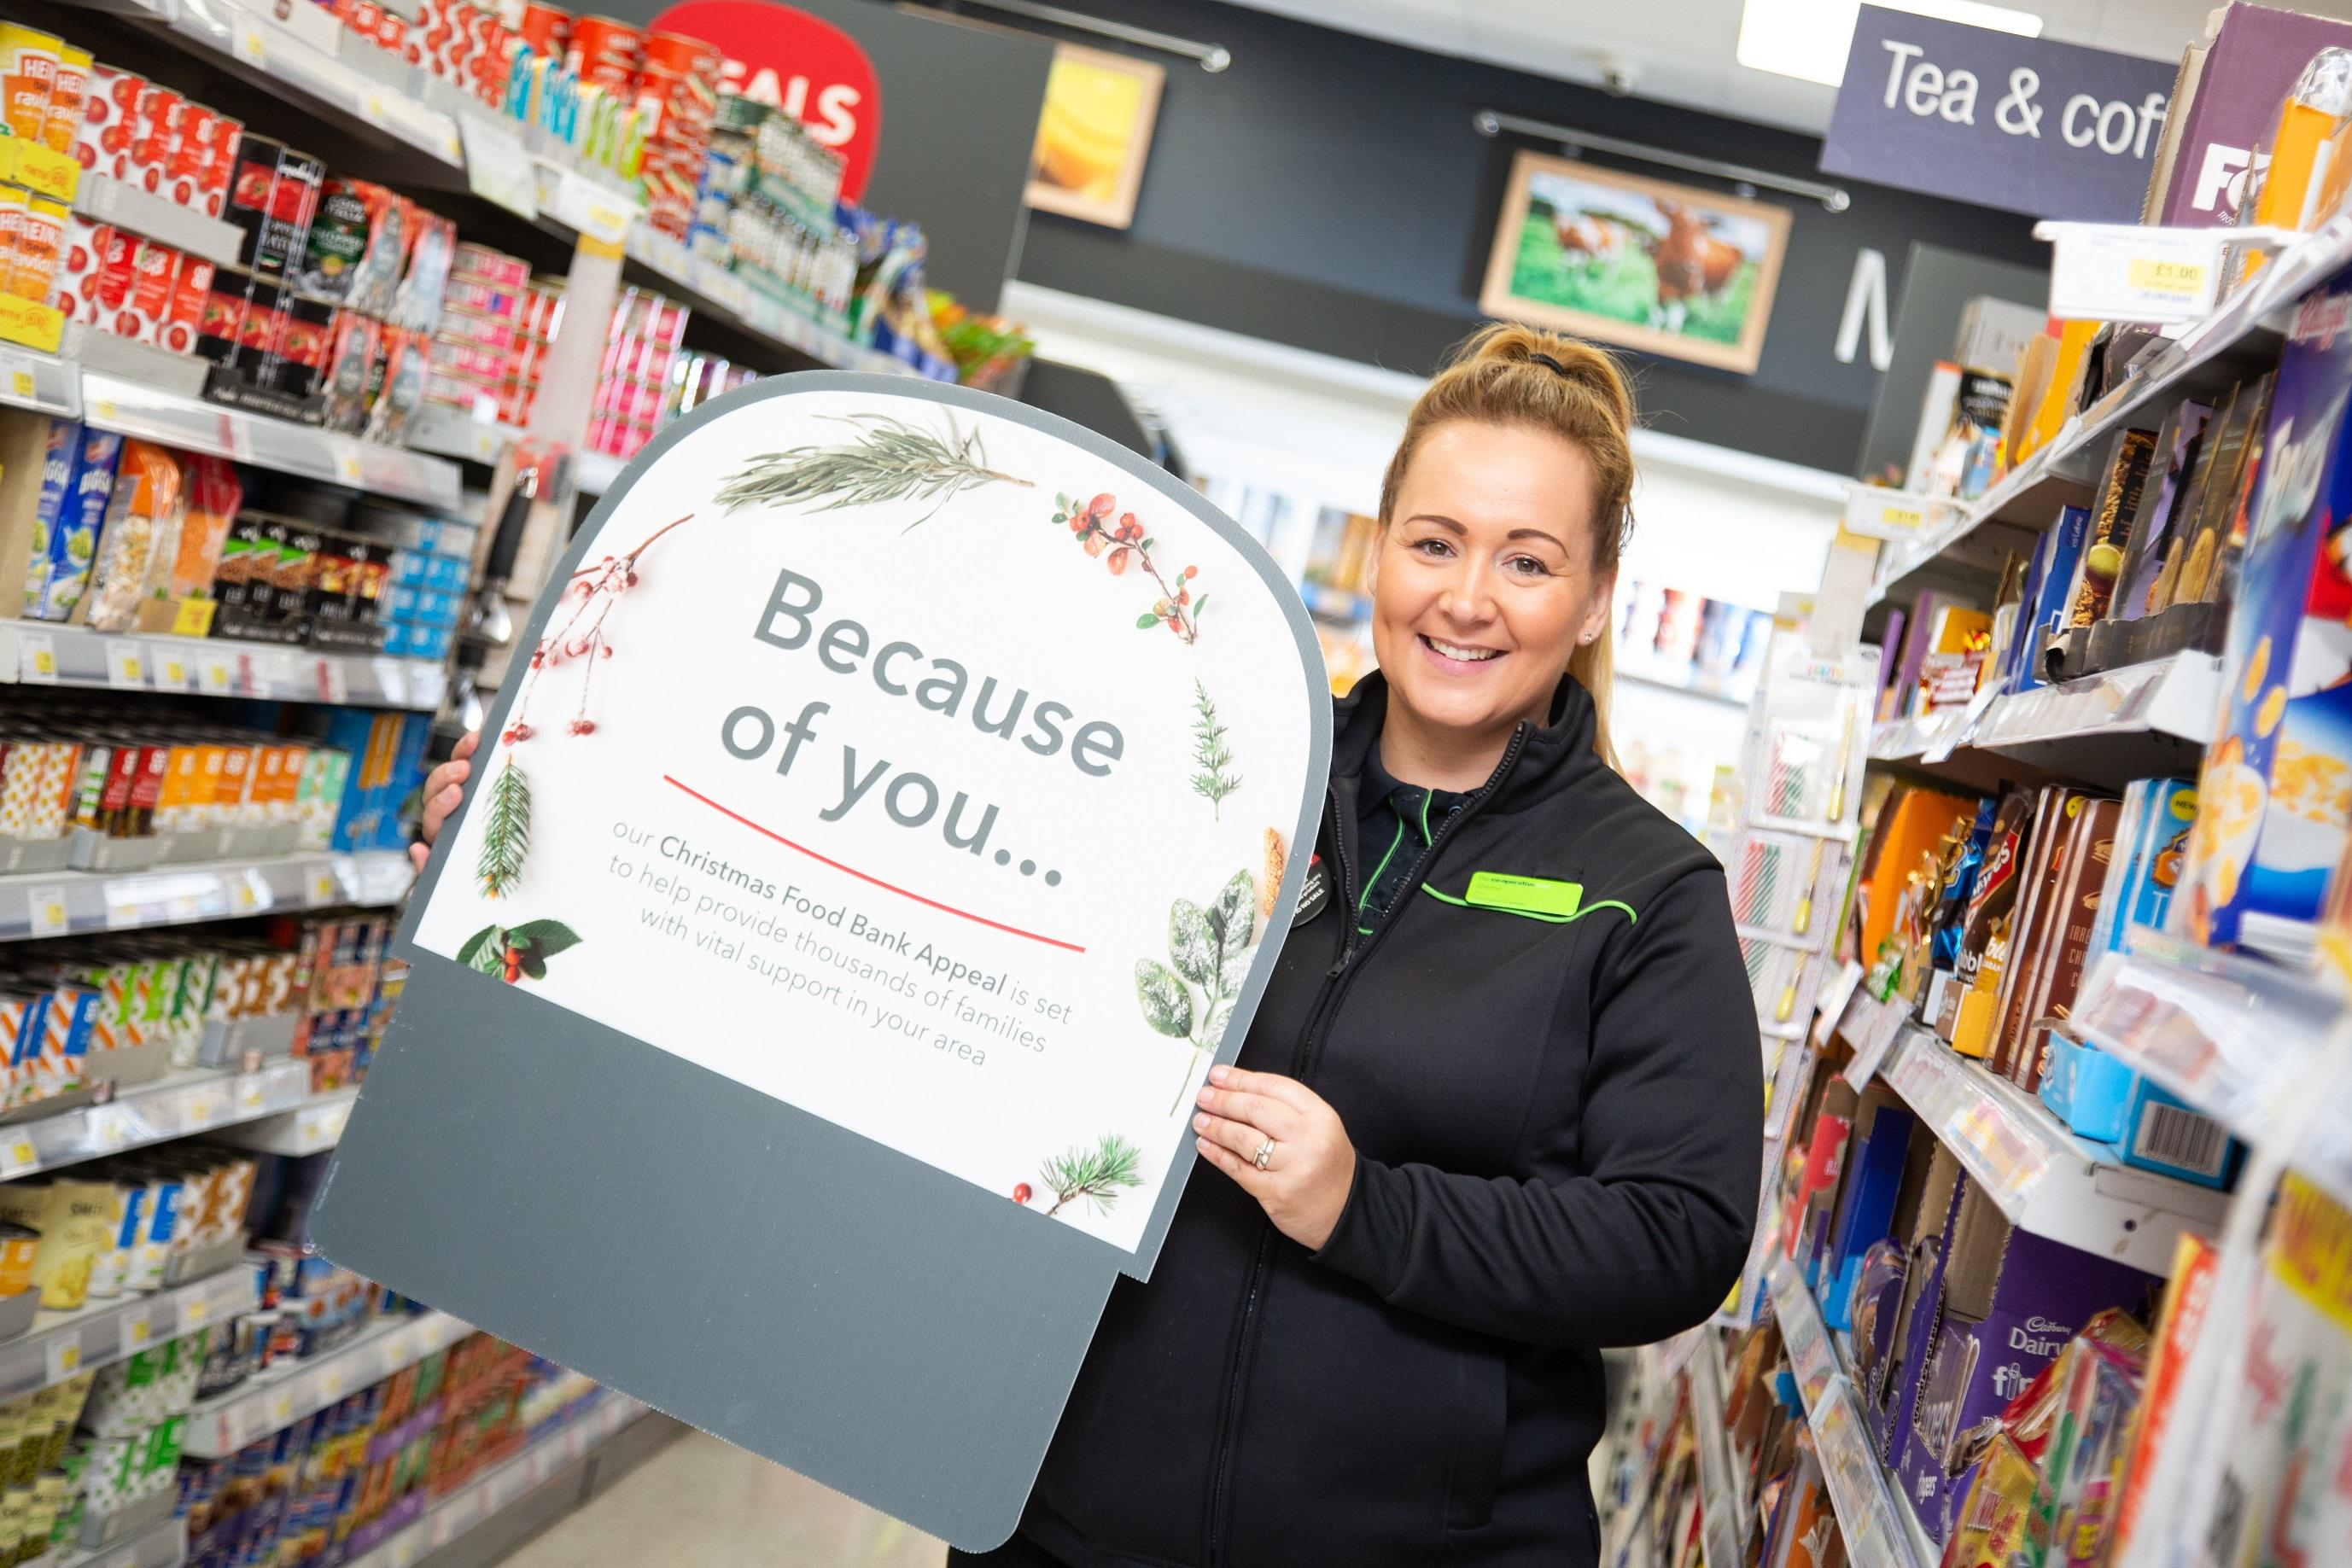 Central England Co-op customers and members donate enough food to create over 30,000 meals for people in need following Christmas Food Bank Appeal